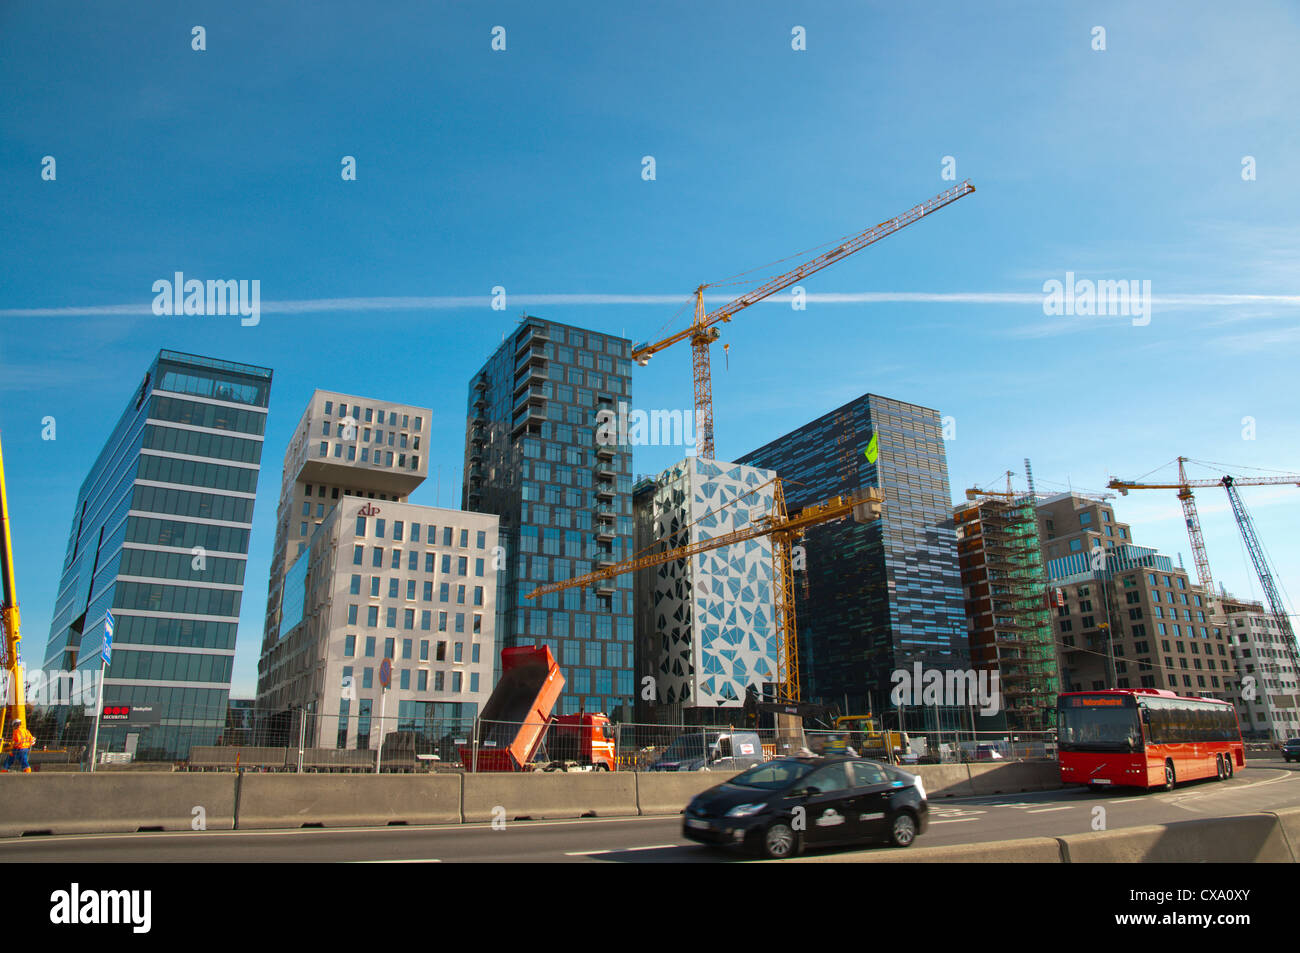 Traffic at Bjorvika district Fjord City area central Oslo Norway Europe - Stock Image